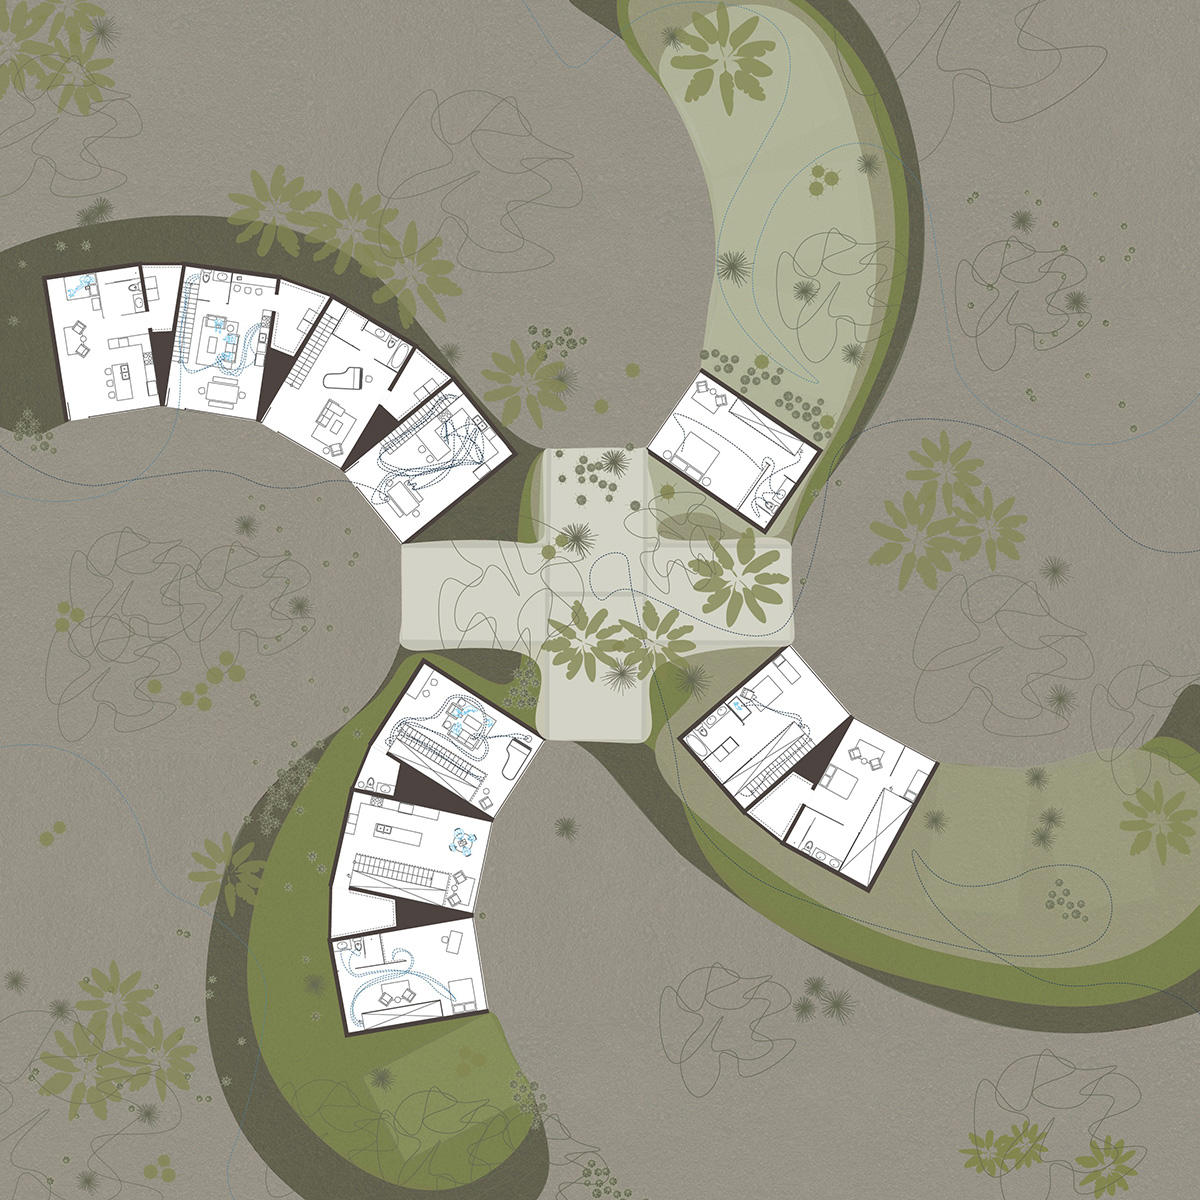 Housing plan showing the units within a single housing mound massing proposed by student Lauren Bennett